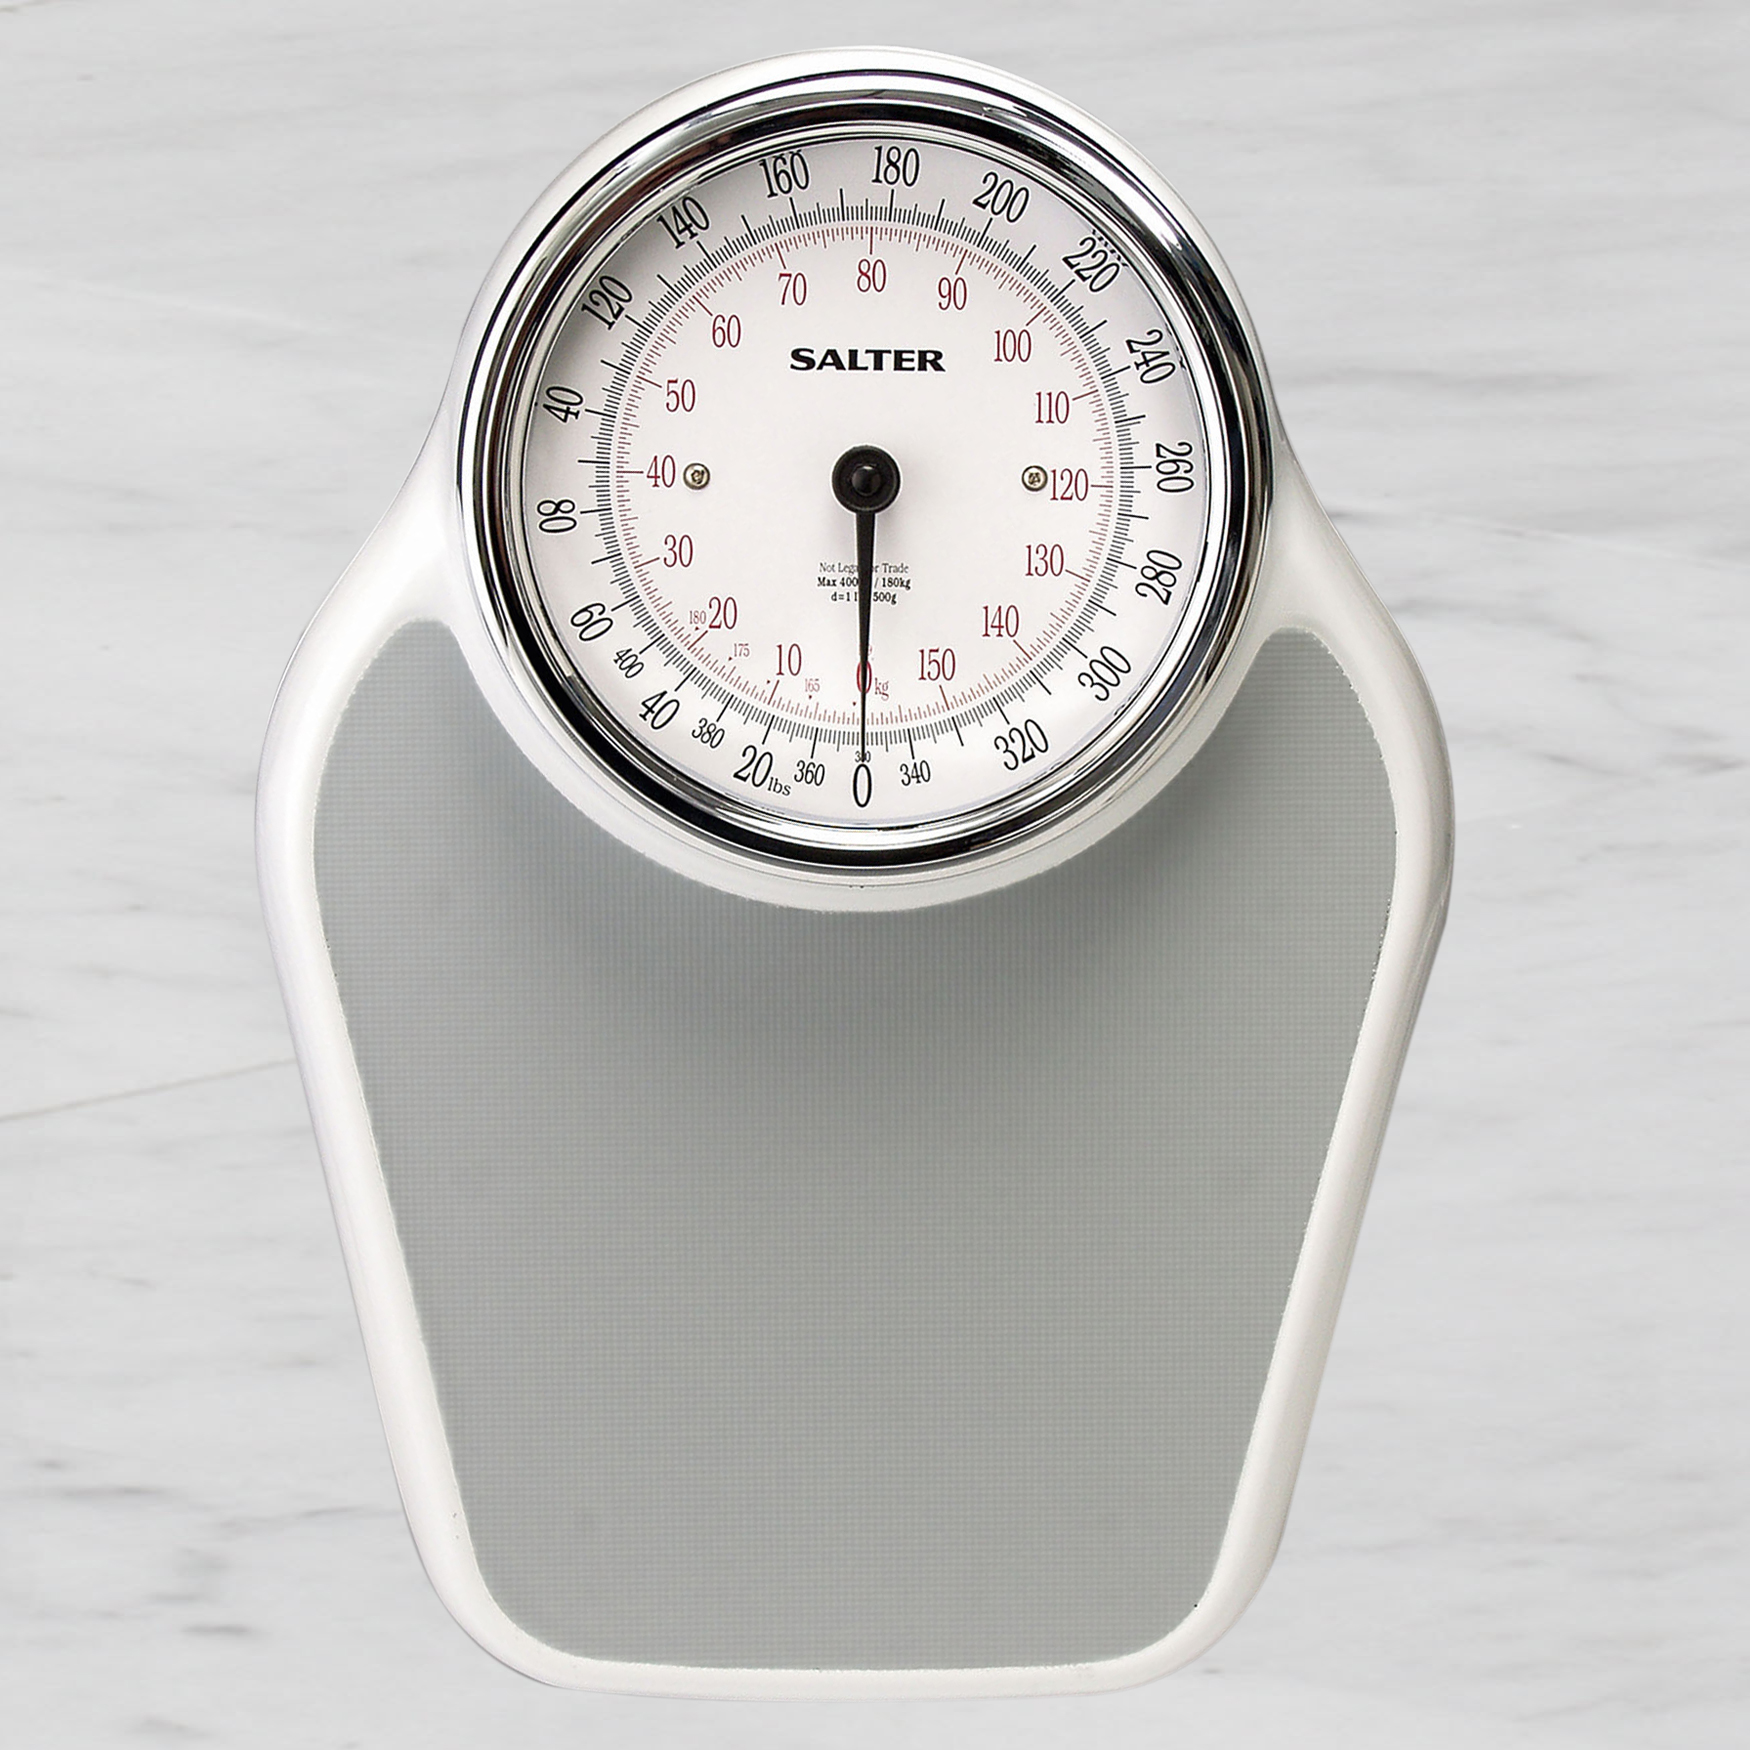 Doctor's High Capacity Bathroom Scale - Up to 400 Pounds, WHITE